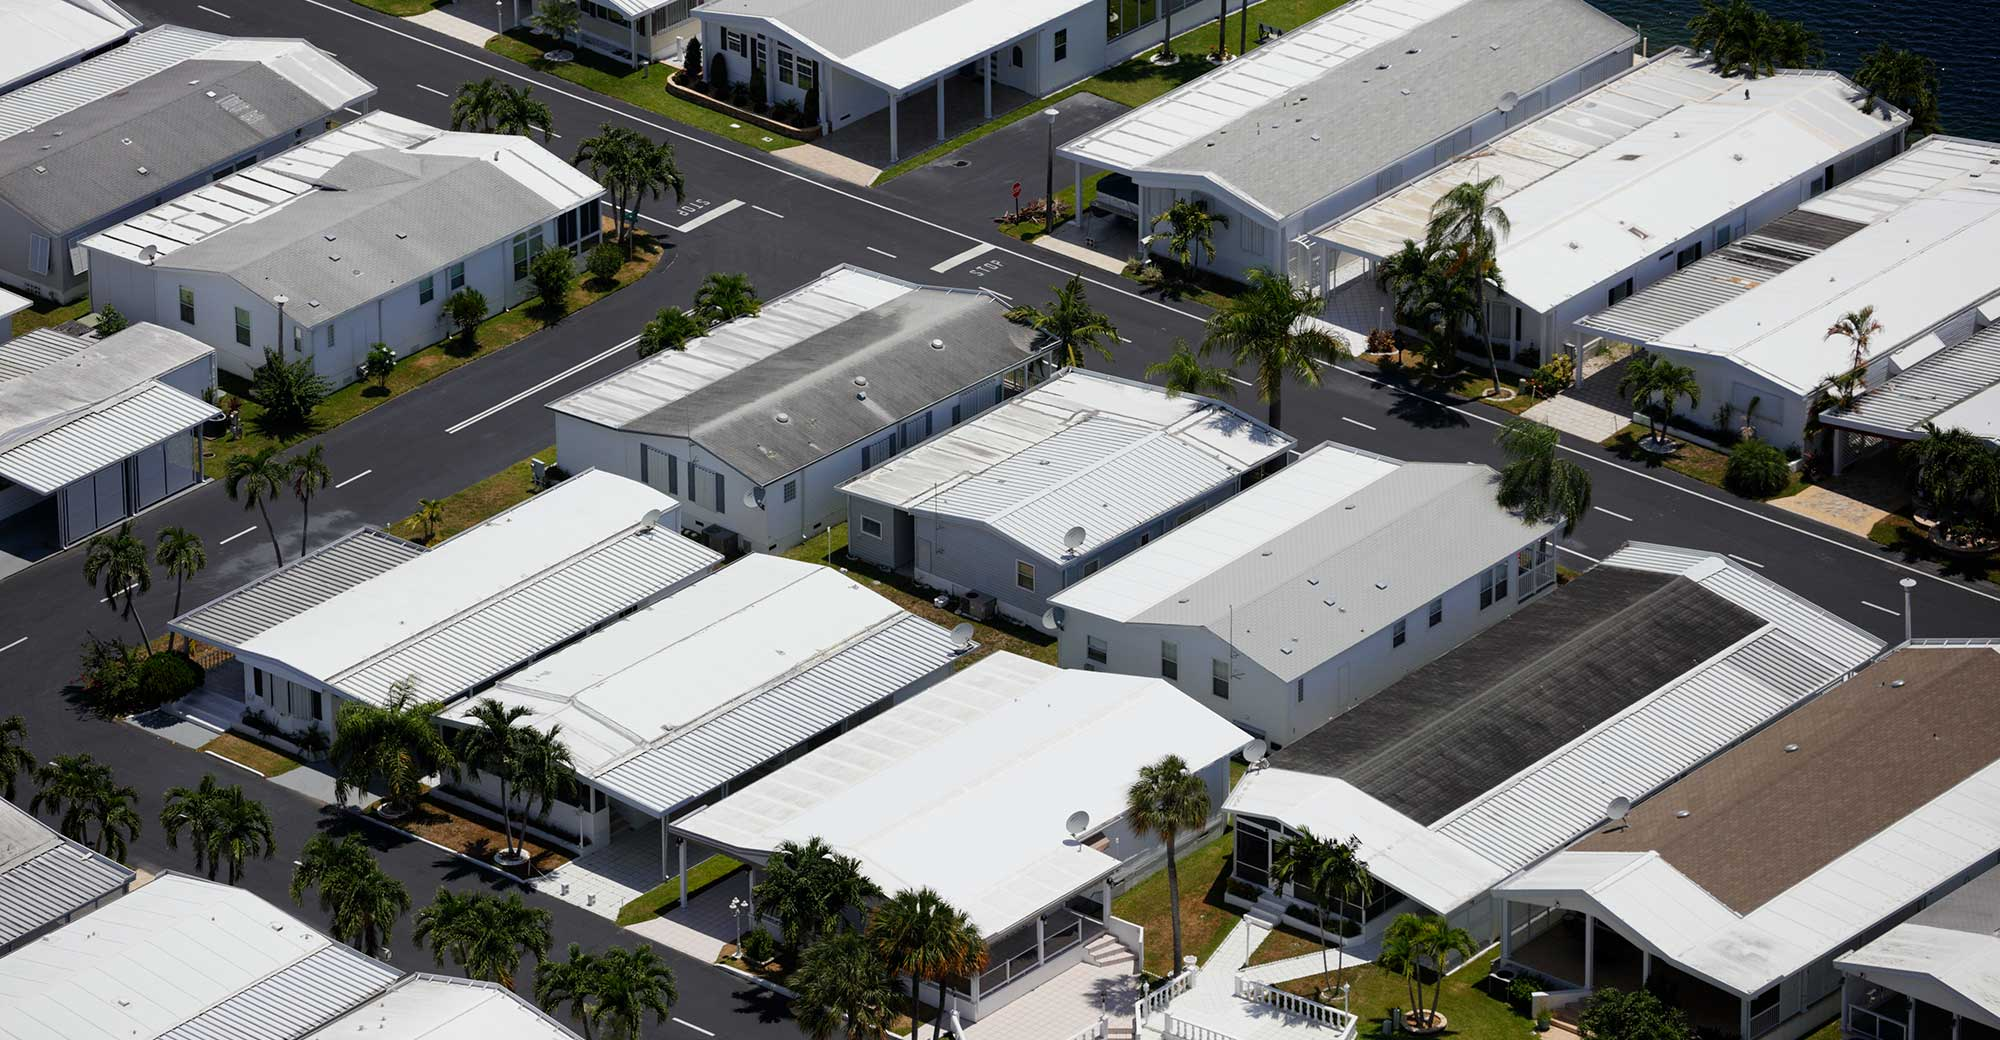 Access here alternative investment news about Blackstone Looking To Buy Mobile Home Parks In $550M Deal | National Real Estate Investor